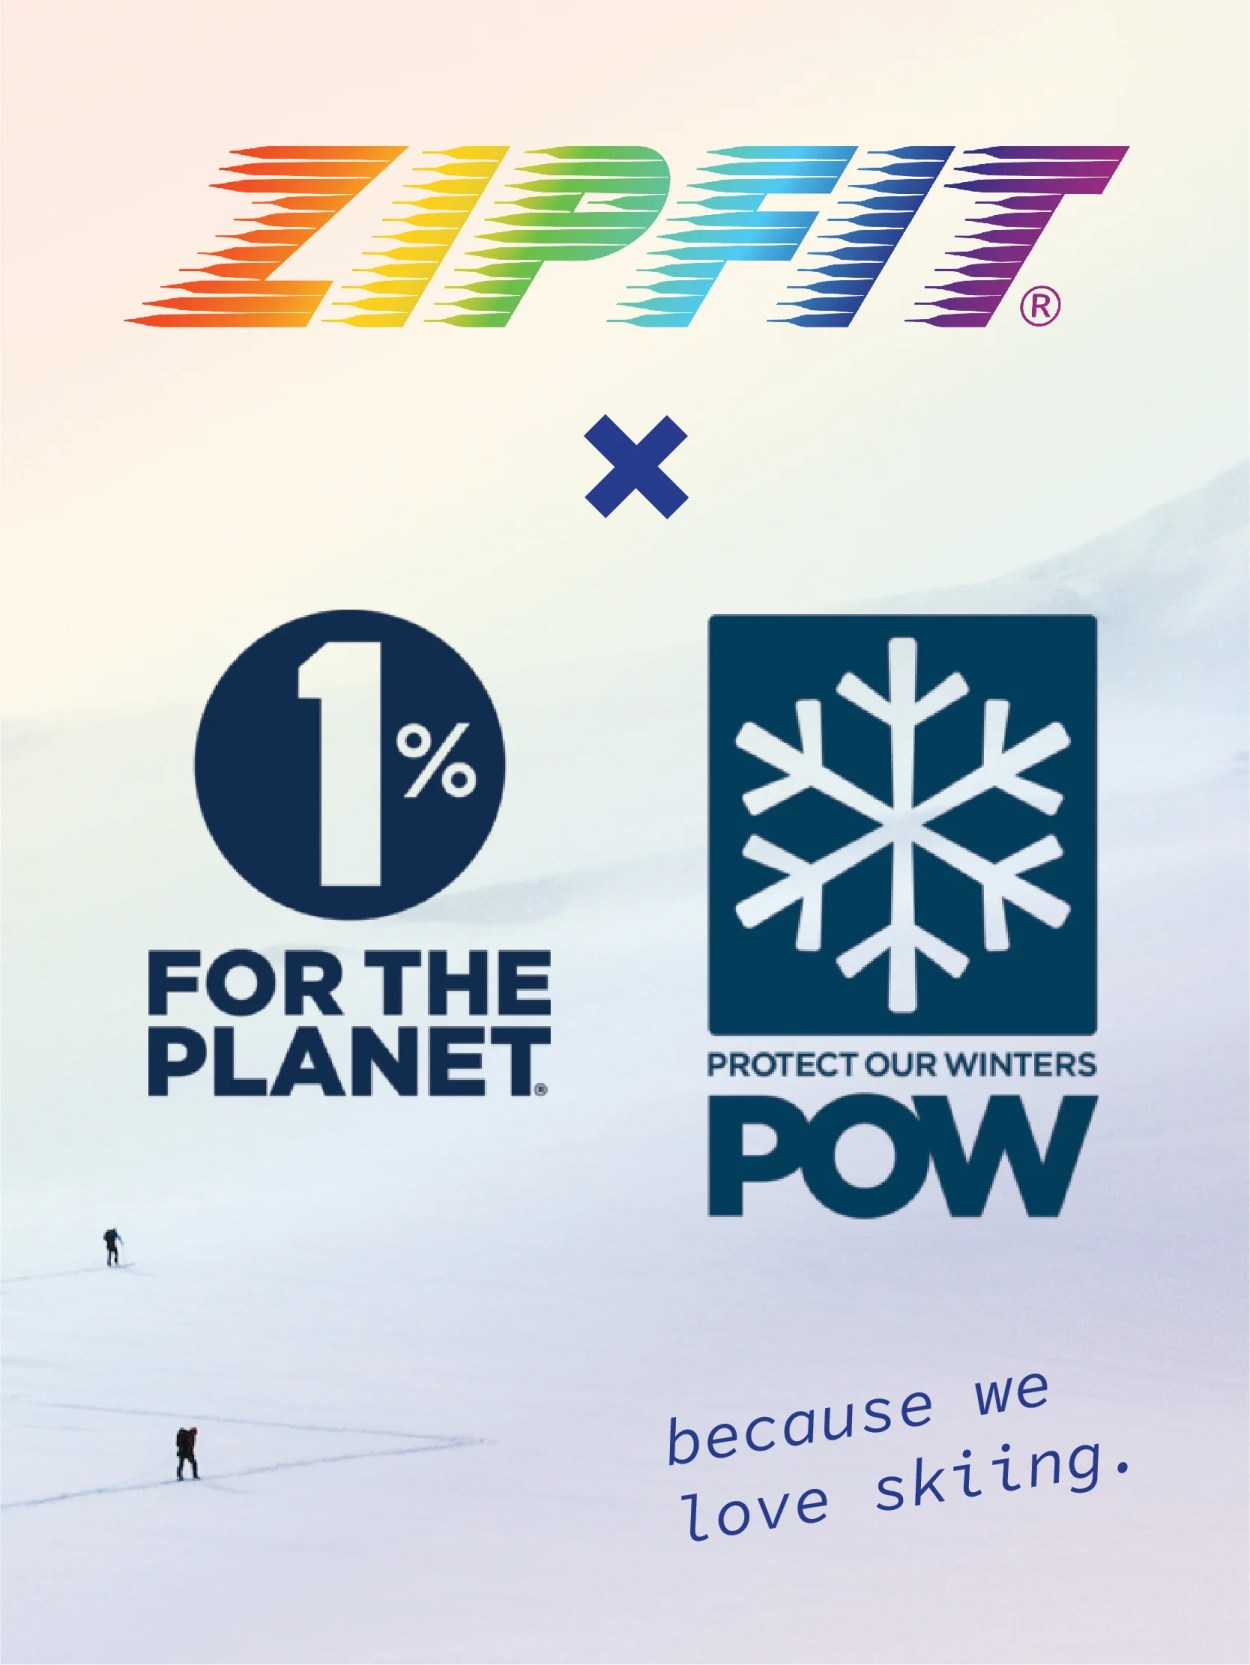 ZipFit 1 POW - Aspen, Colo(Sept. 30 2021) – ZipFit Liners have long stood for quality and durability. As a brand, we turn our backs on planned obsolescence and aim to make liners that last so long, they lessen our community's collective impact on the planet. We are proud to take our commitment to winter one step further by partnering with world class nonprofits 1% for the Planet and Protect Our Winters.